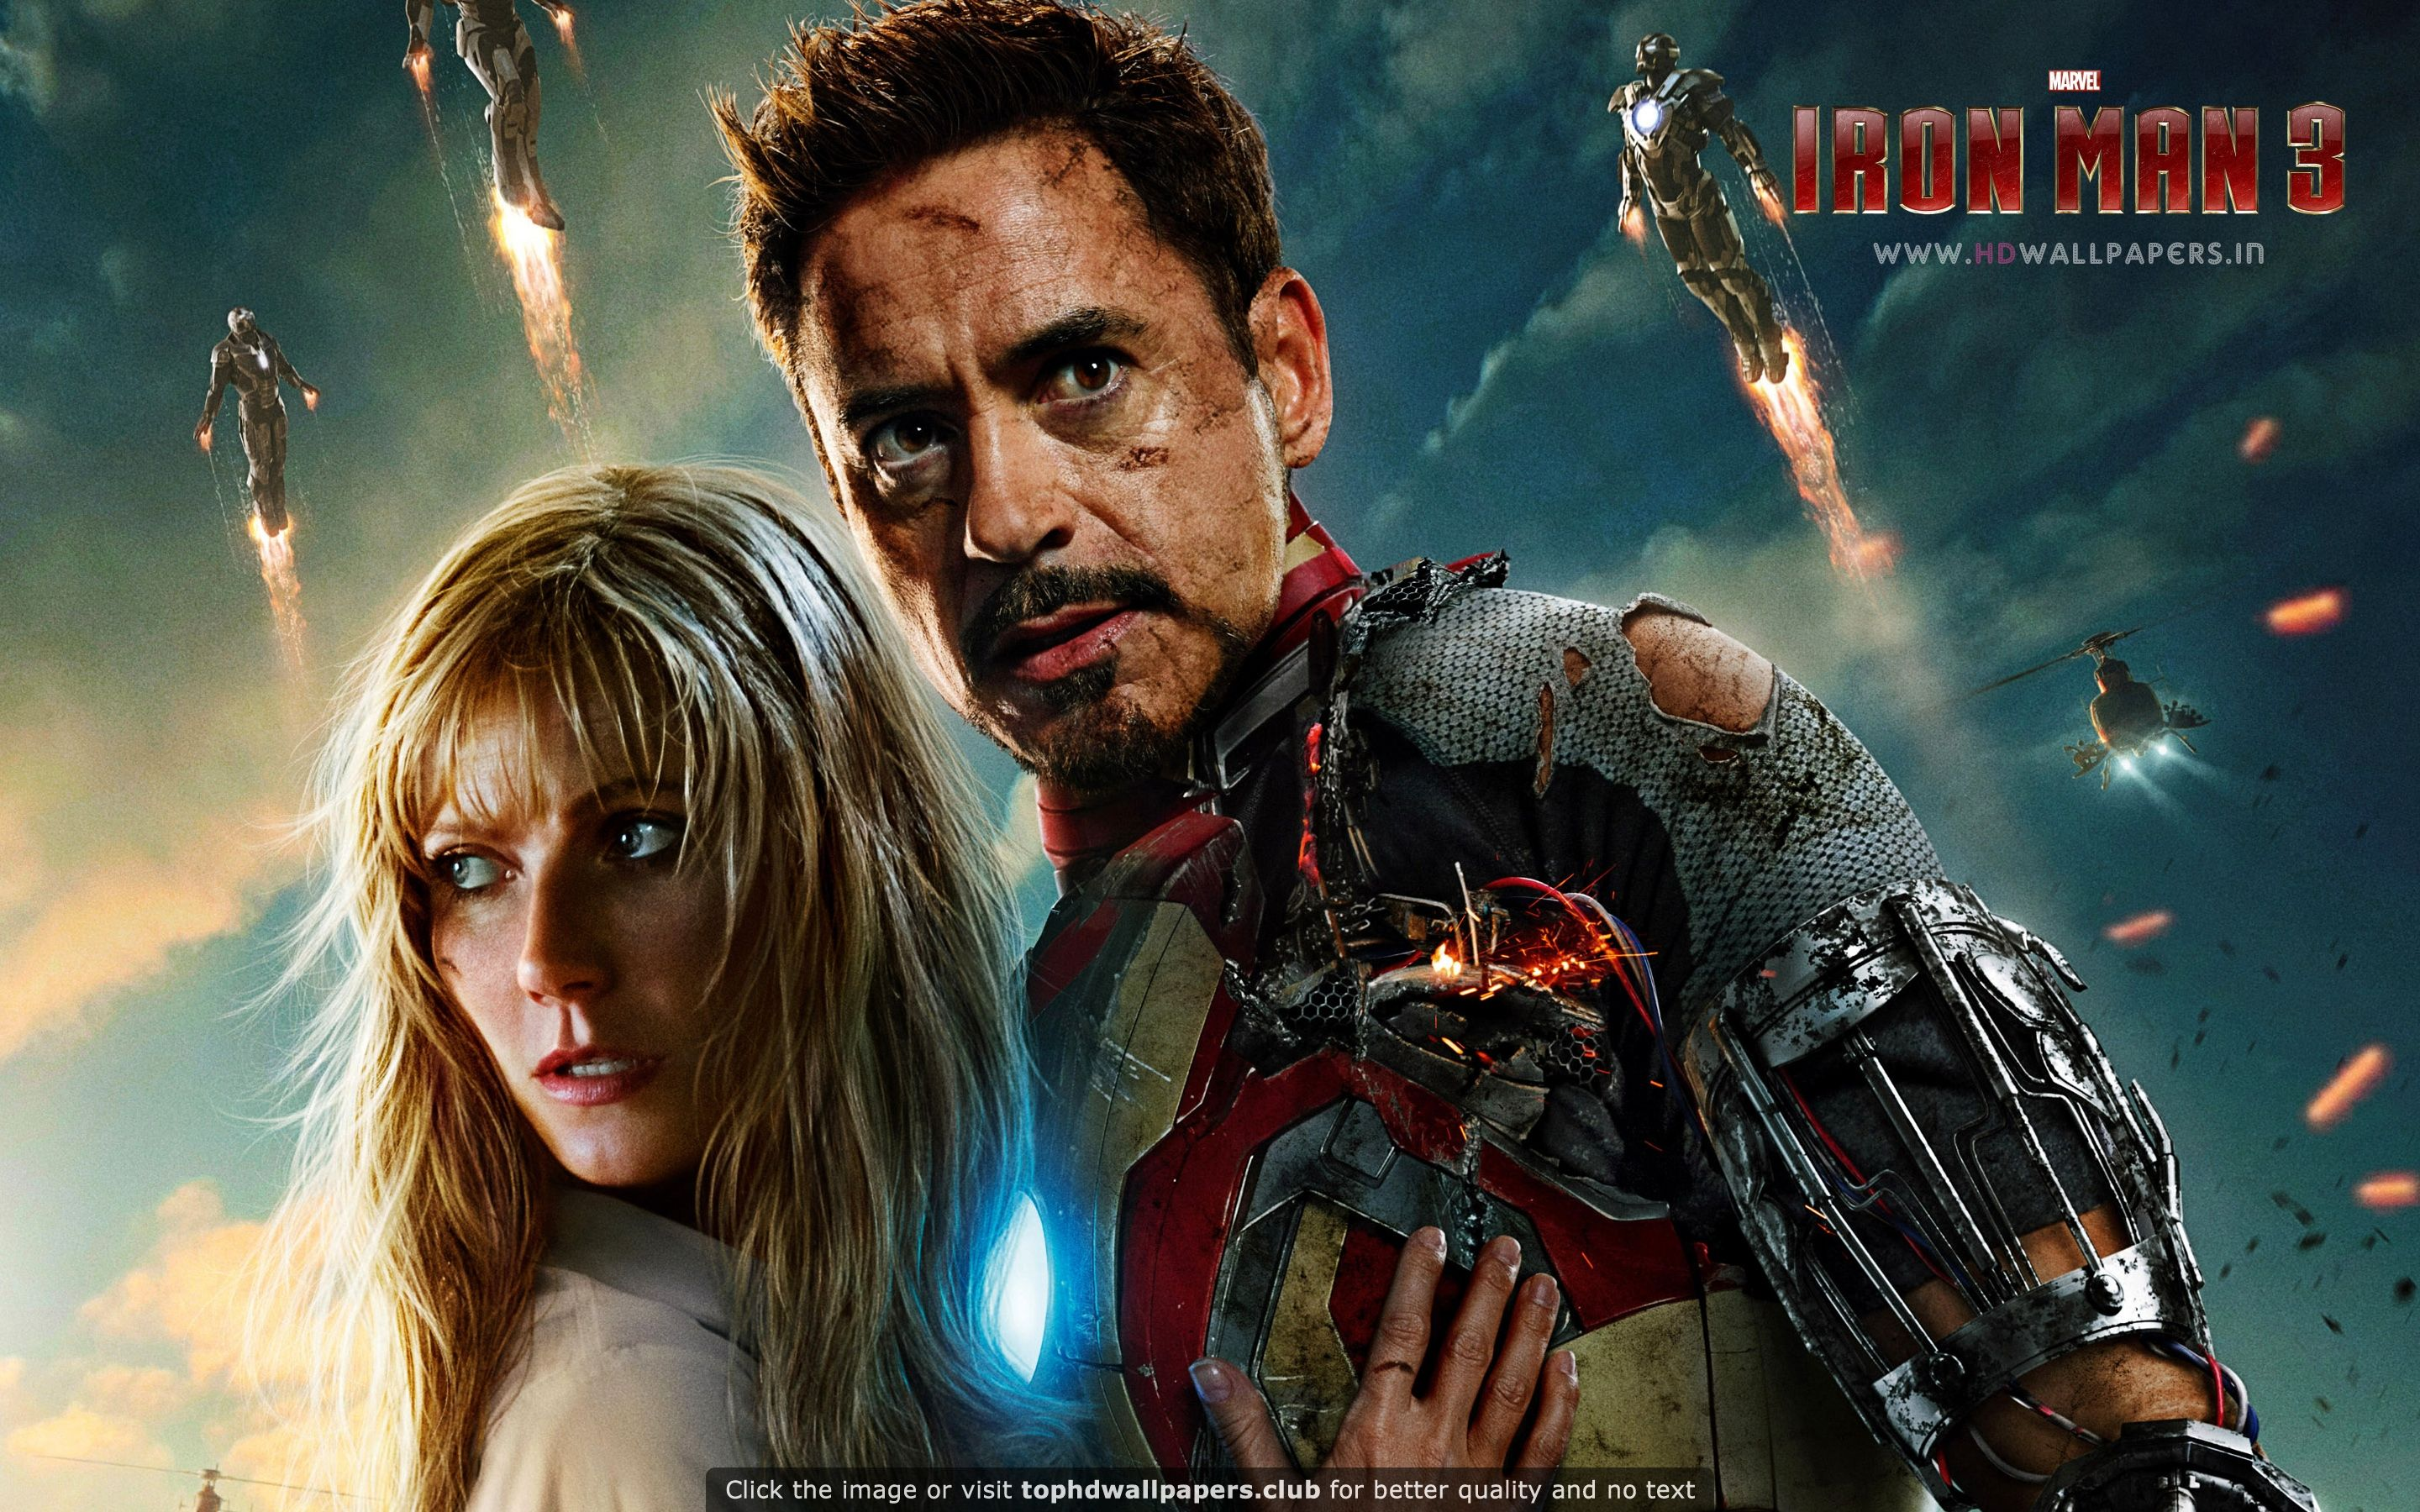 iron man movie hd wallpaper for your pc, mac or mobile device